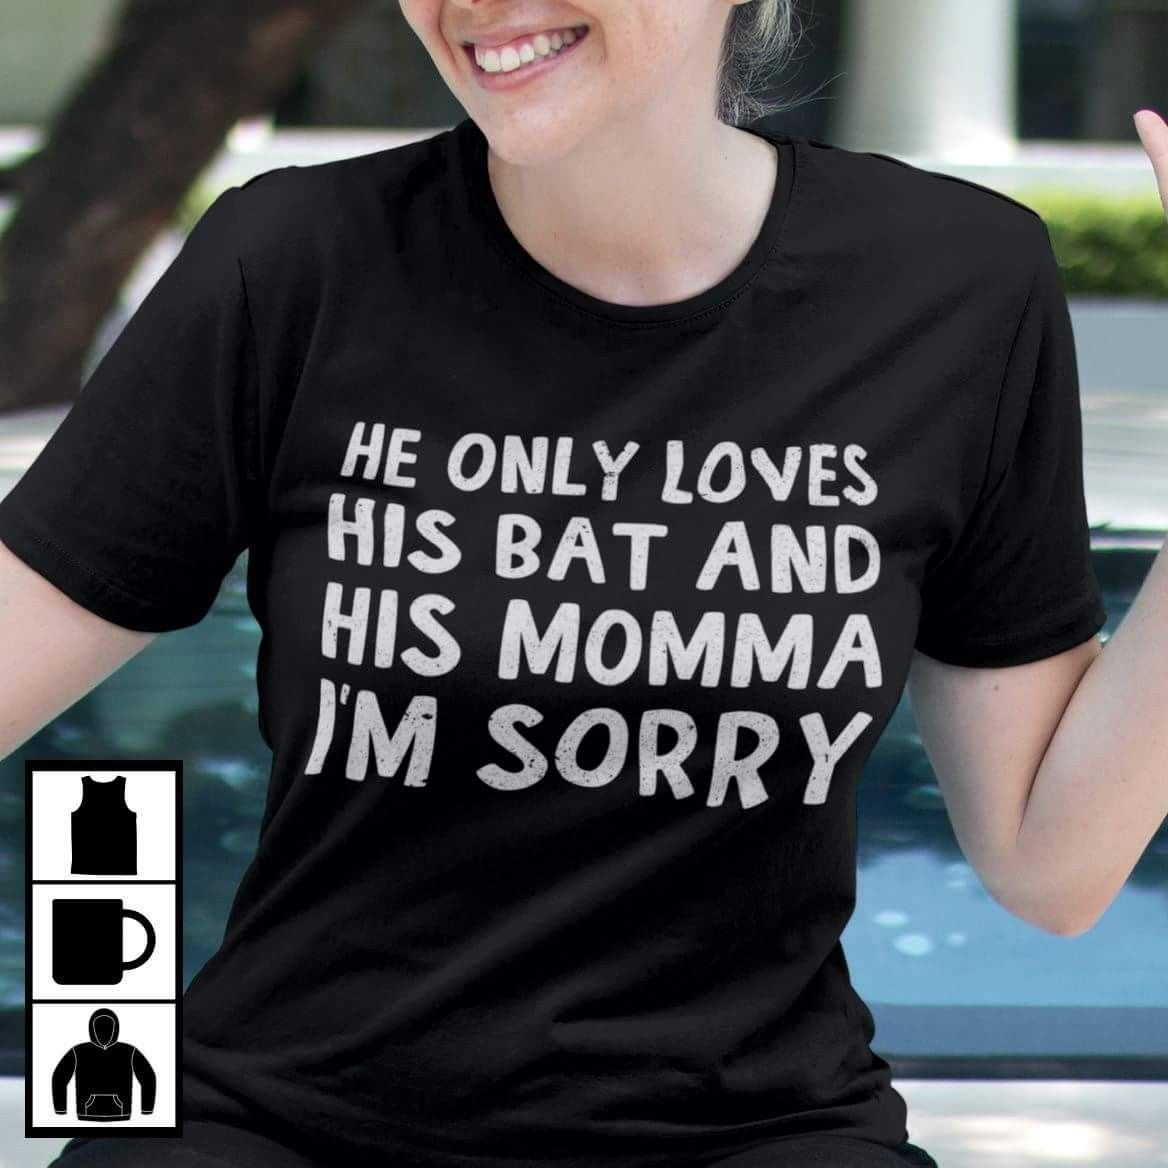 Download he only loves his bat & his momma , sorry   Mens tops ...